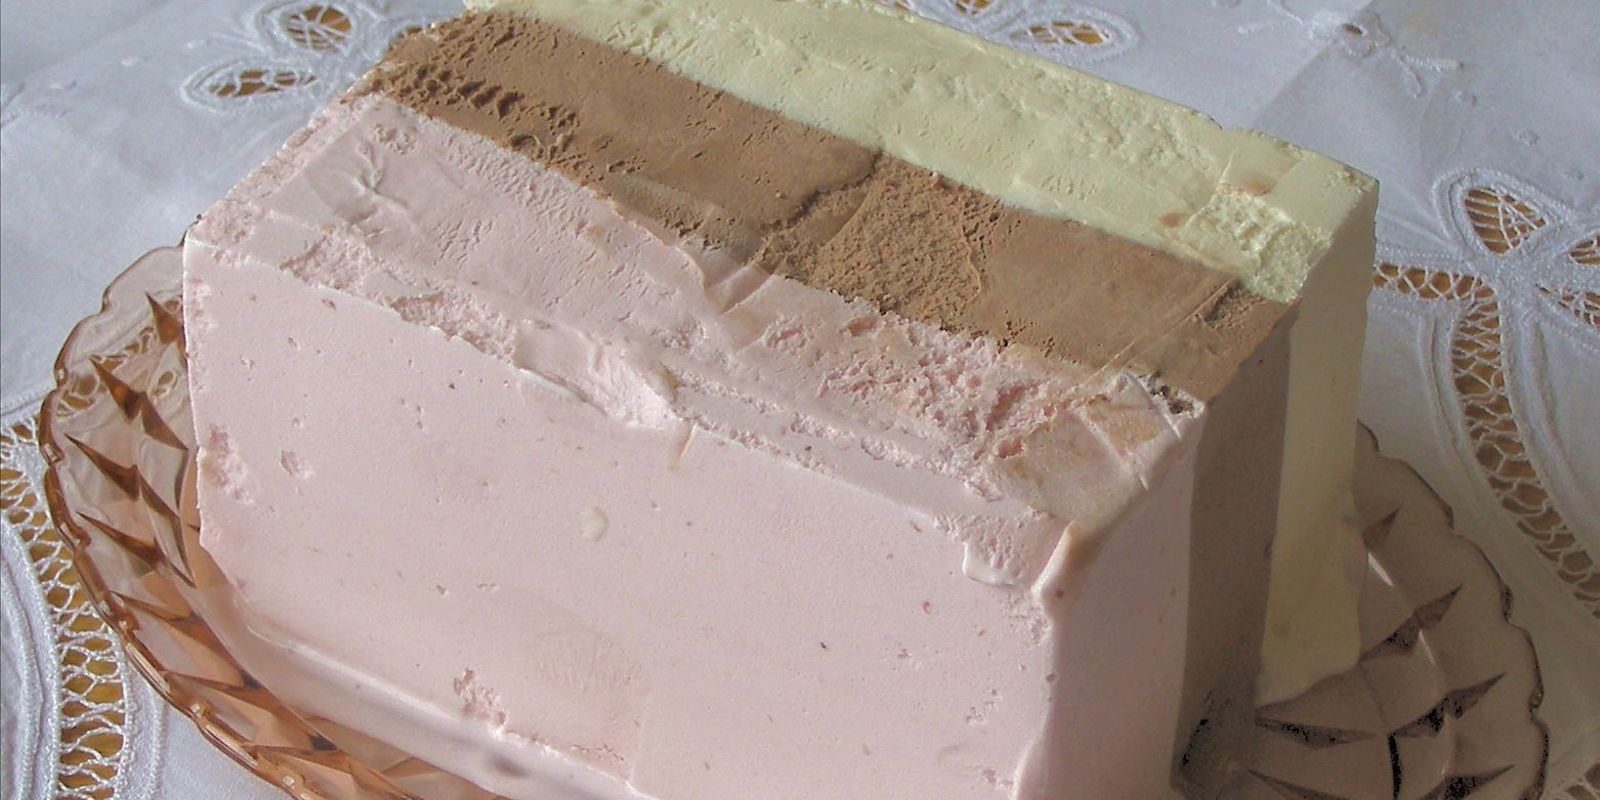 picture of serving of Neapolitan ice cream to illustrate content strategy 3-flavors concept